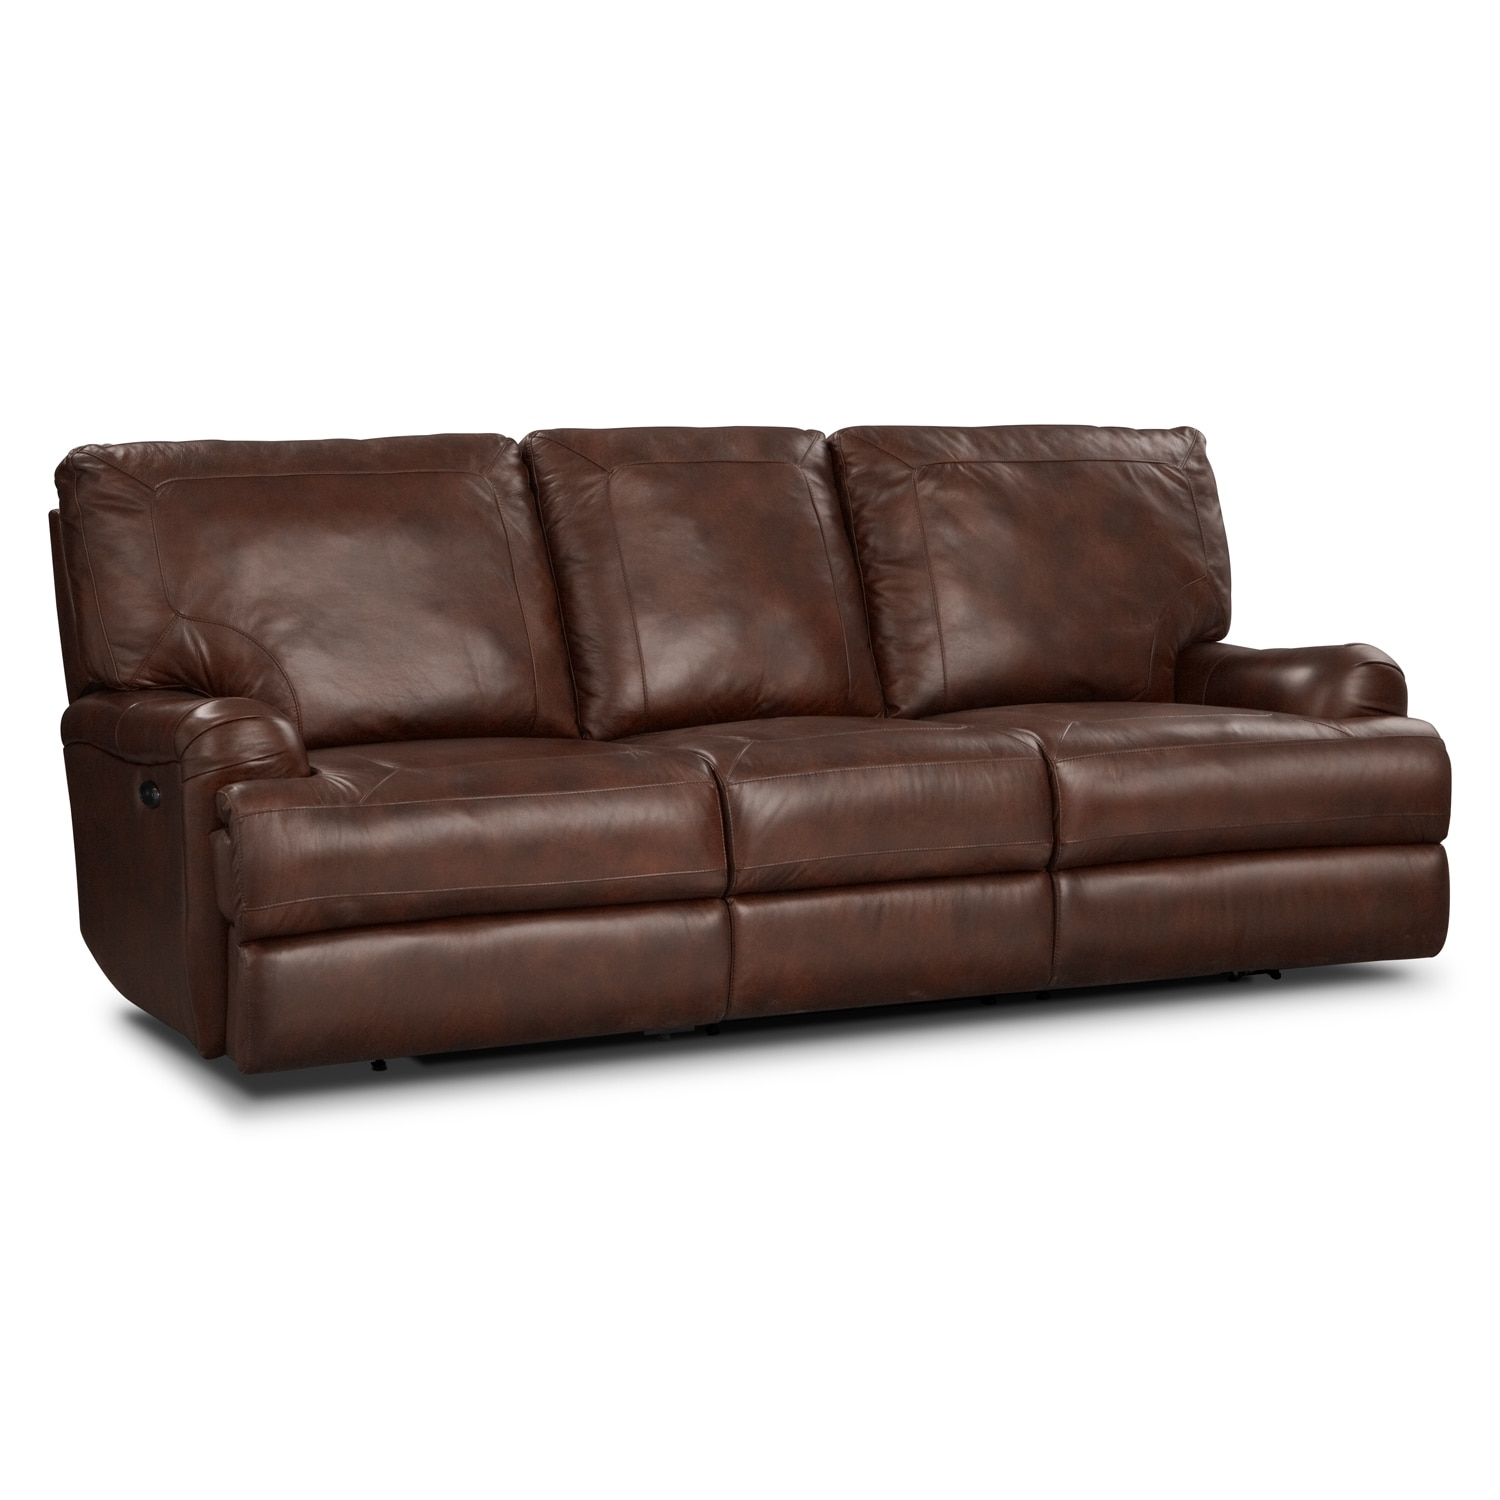 Fresh Power Reclining Sofa 16 For Your Contemporary Sofa Inspiration with Power Reclining Sofa